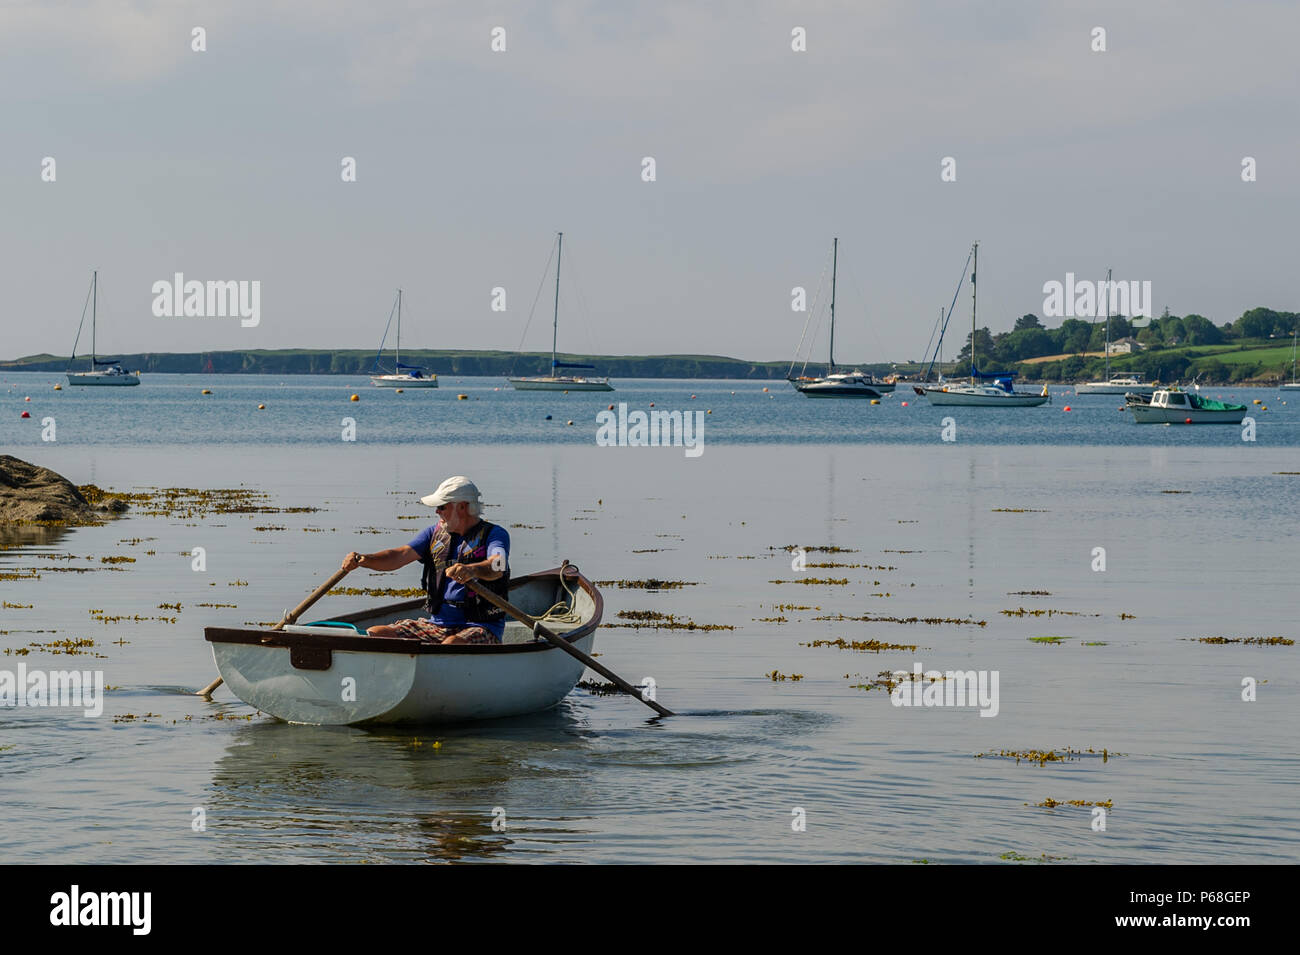 schull-west-cork-ireland-29th-june-2018-a-local-schull-resident-rows-out-into-the-bay-in-his-boat-for-a-days-fishing-during-the-heatwave-temperatures-will-remain-in-the-mid-20s-celsius-for-the-rest-of-the-weekend-but-rain-is-forecast-from-monday-onwards-credit-andy-gibsonalamy-live-news-P68GEP.jpg